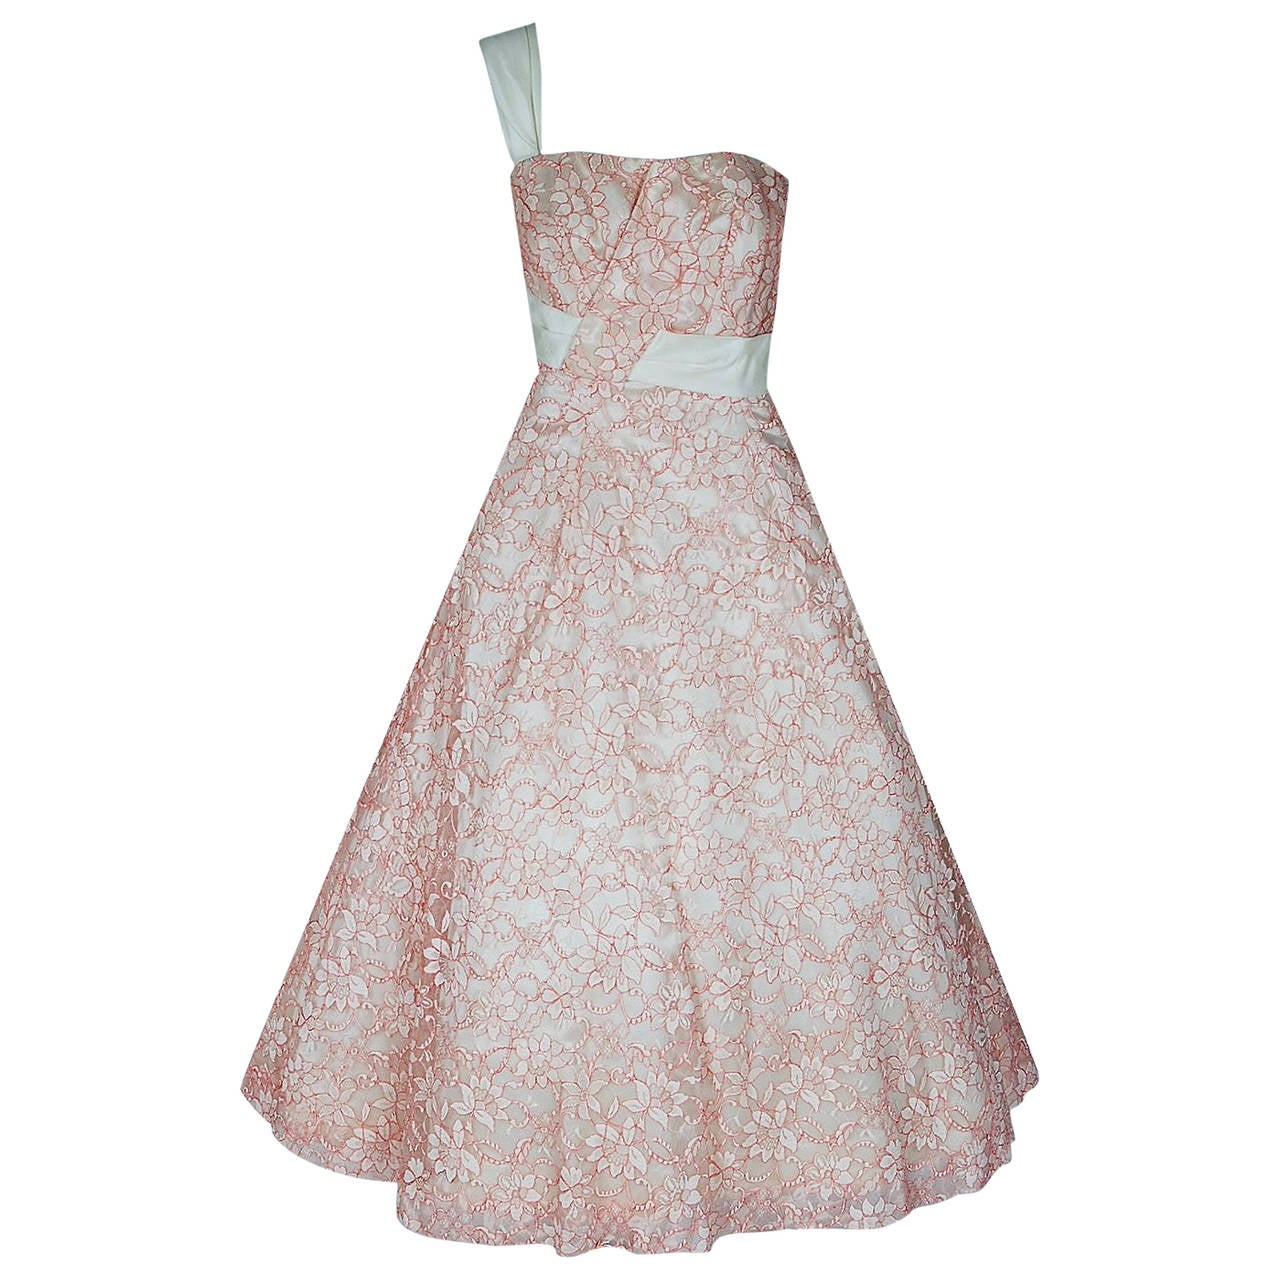 1950's Jacques Heim Haute-Couture Pink White Lace One-Shoulder Full Party Dress 1